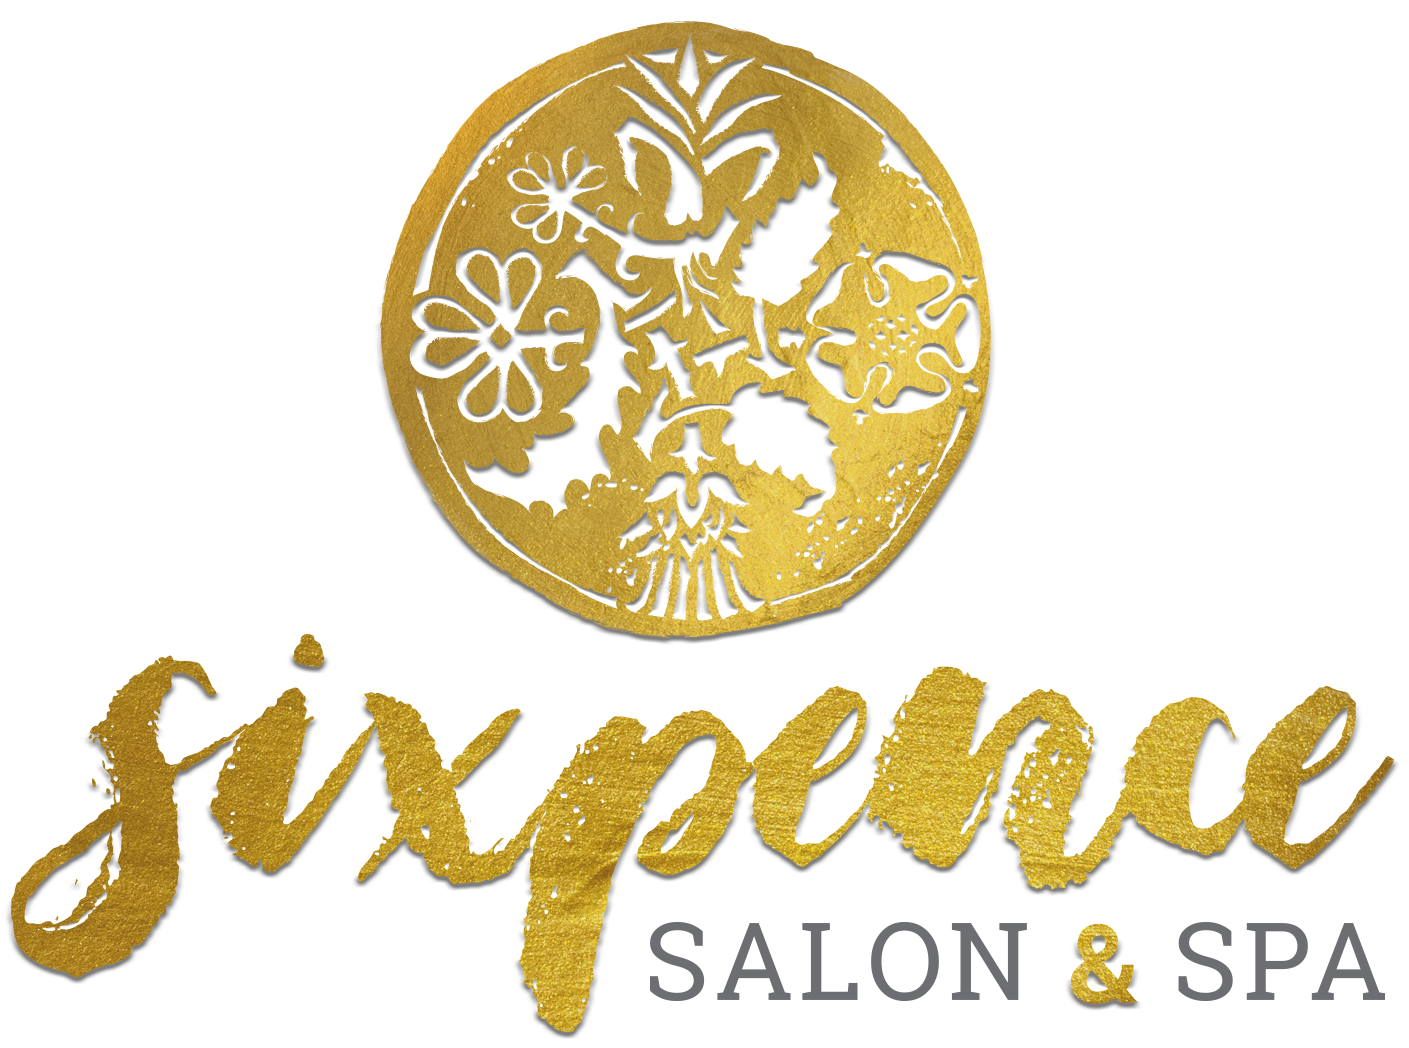 Six Pence Salon & Spa